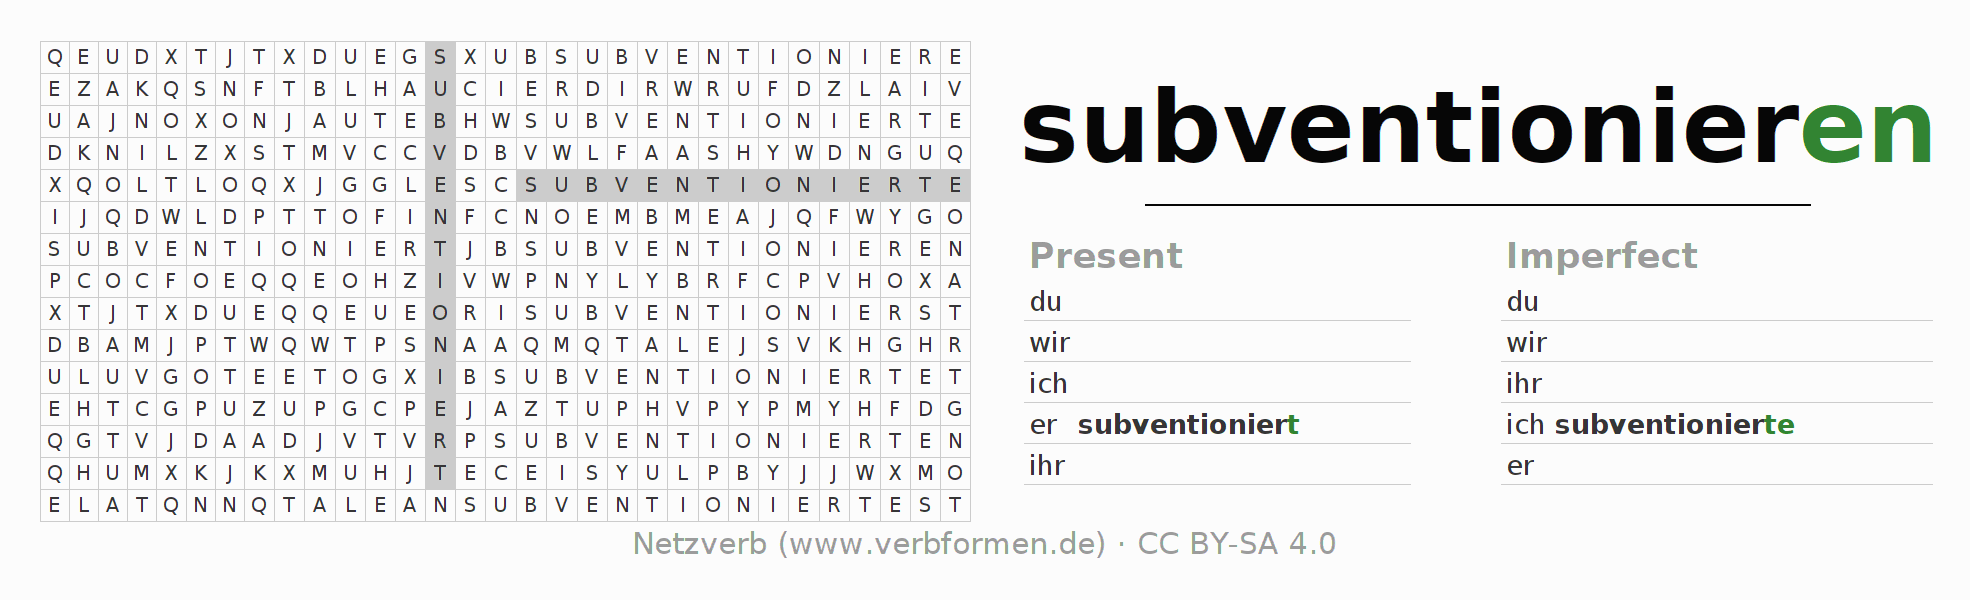 Word search puzzle for the conjugation of the verb subventionieren